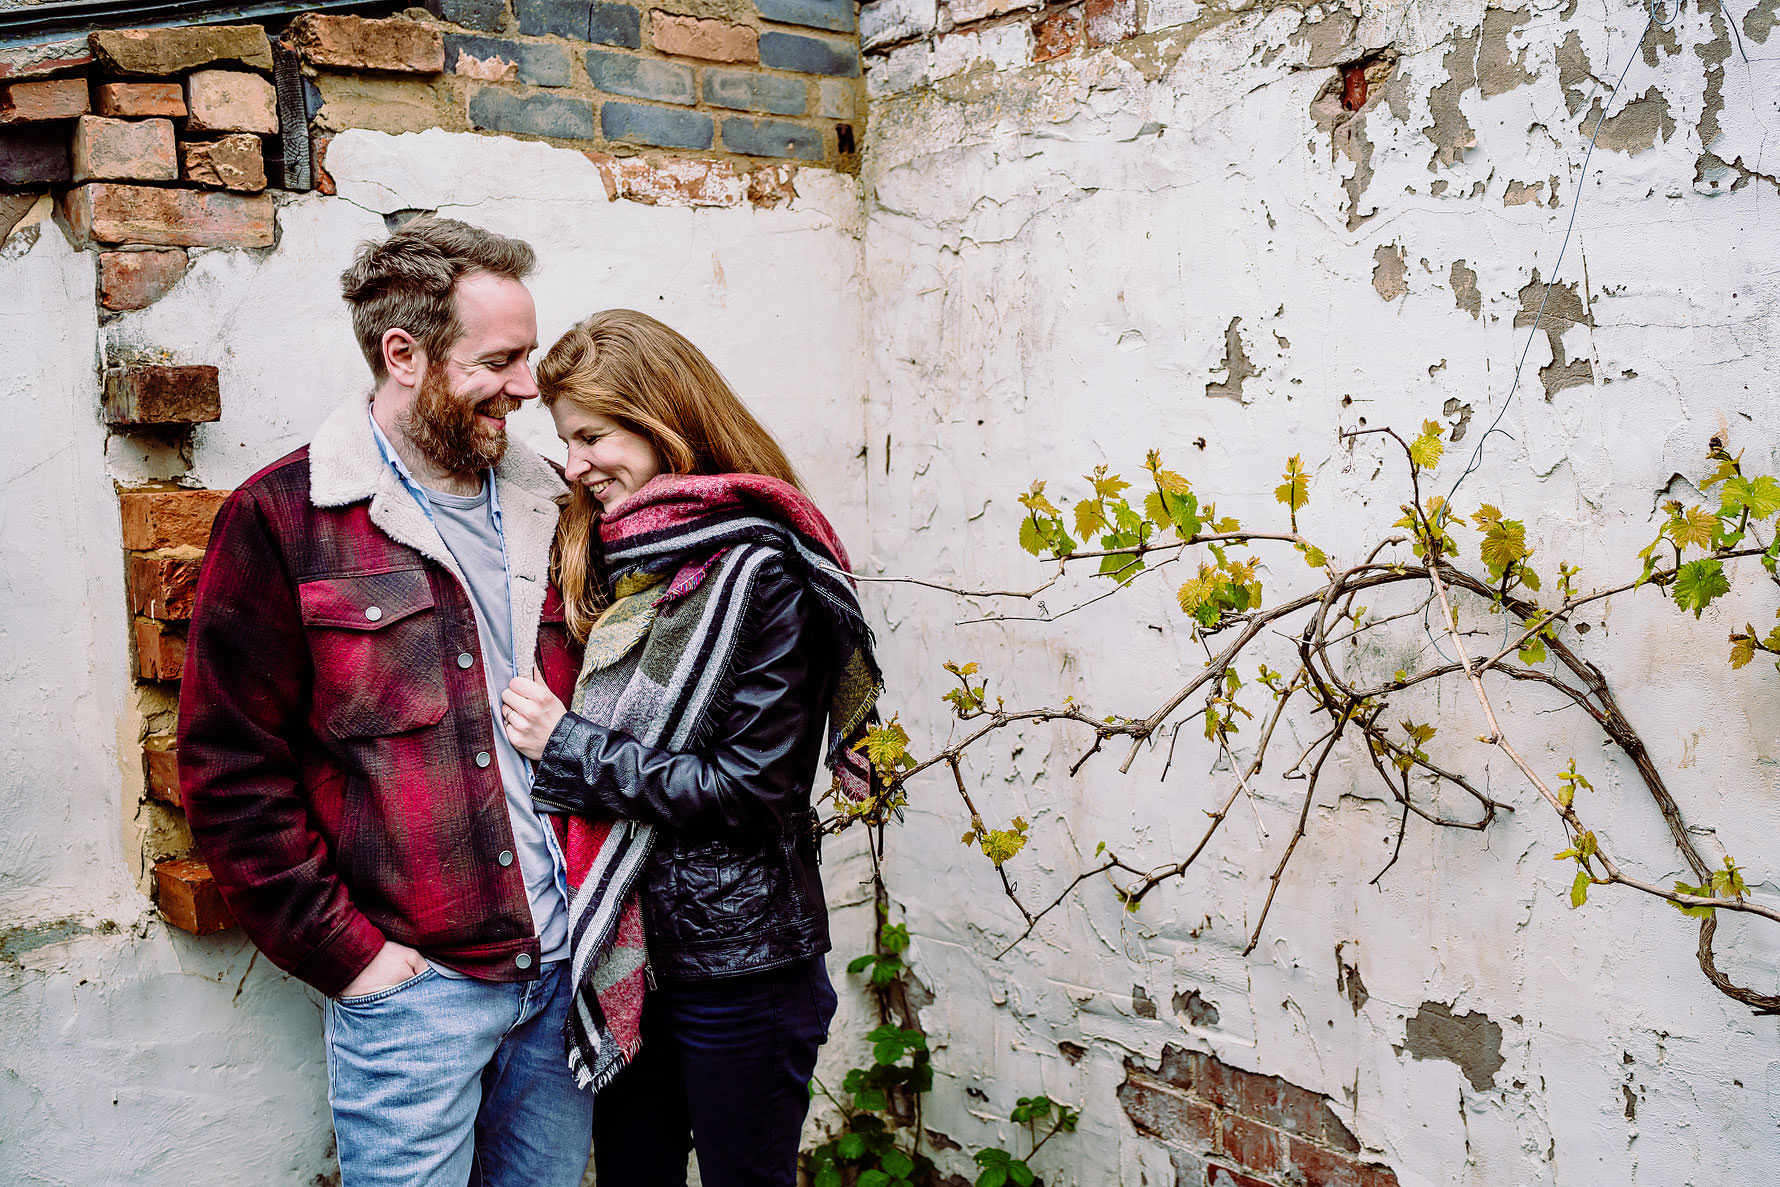 an engagement photography by Elliot w patching in Northamptonshire